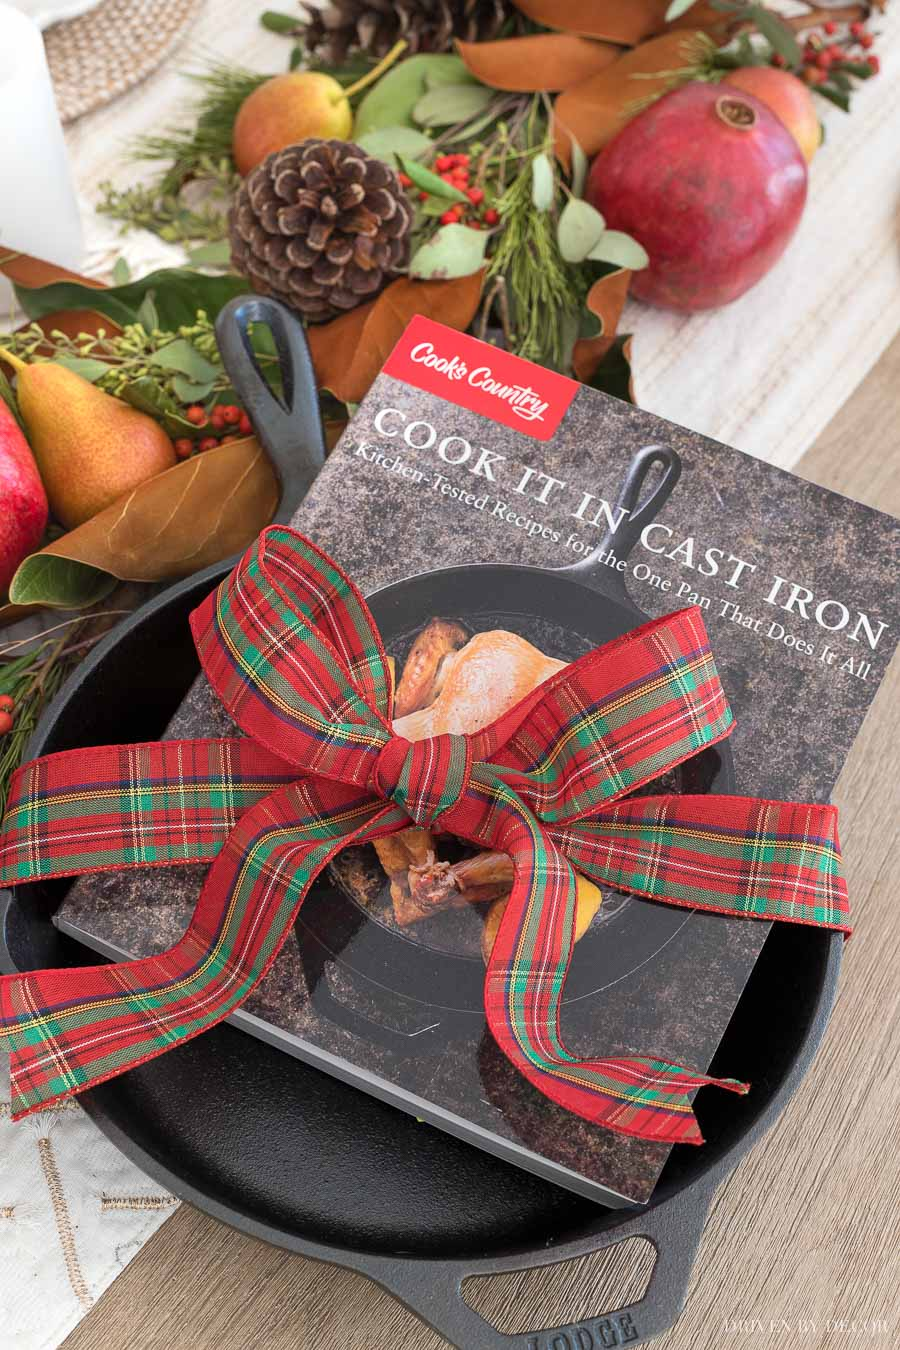 Cute gift idea for those who love to cook -  a cast iron skillet and highly rated cook book!